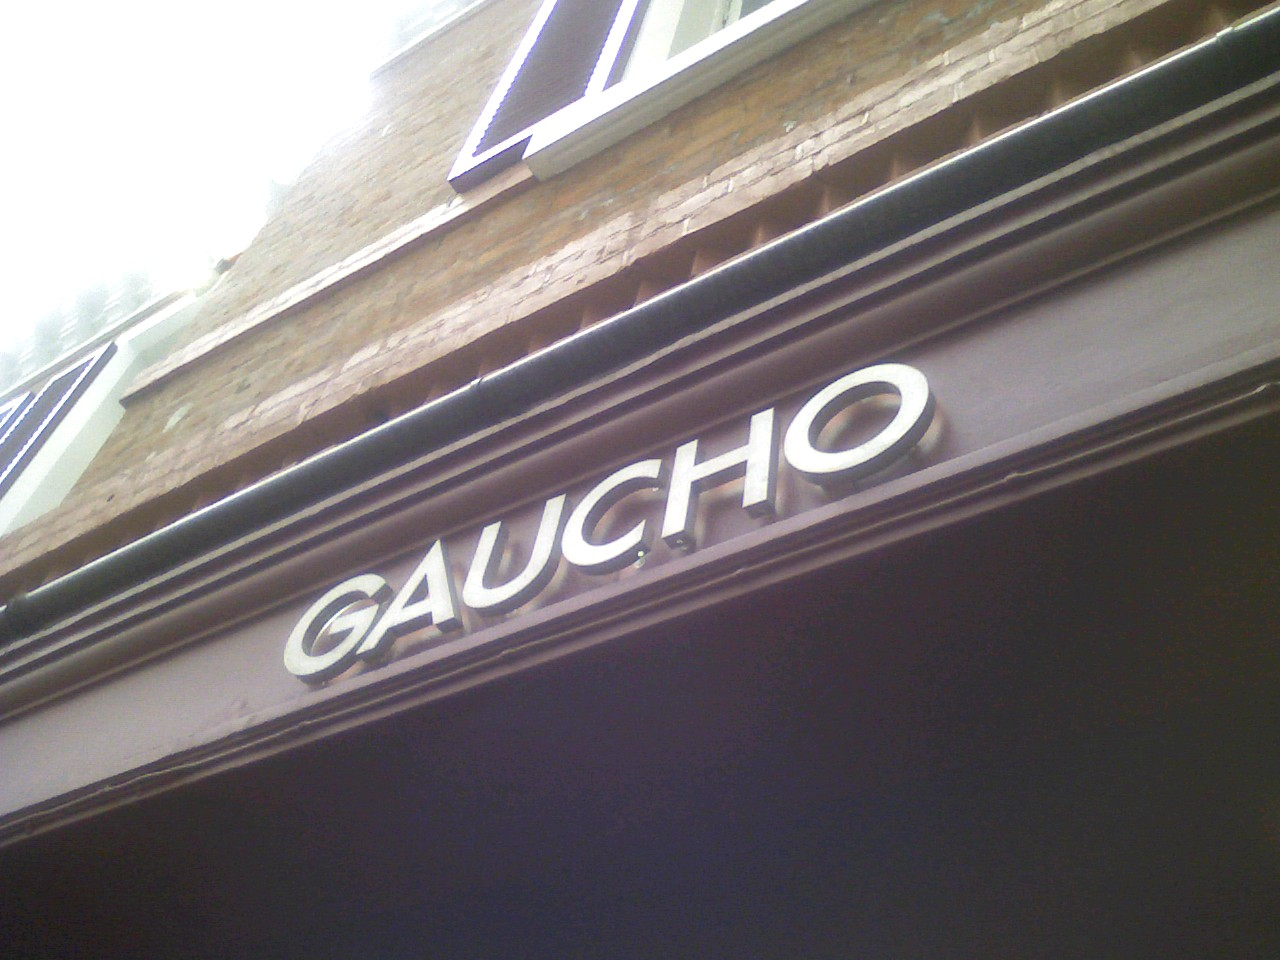 Gaucho Picadilly London